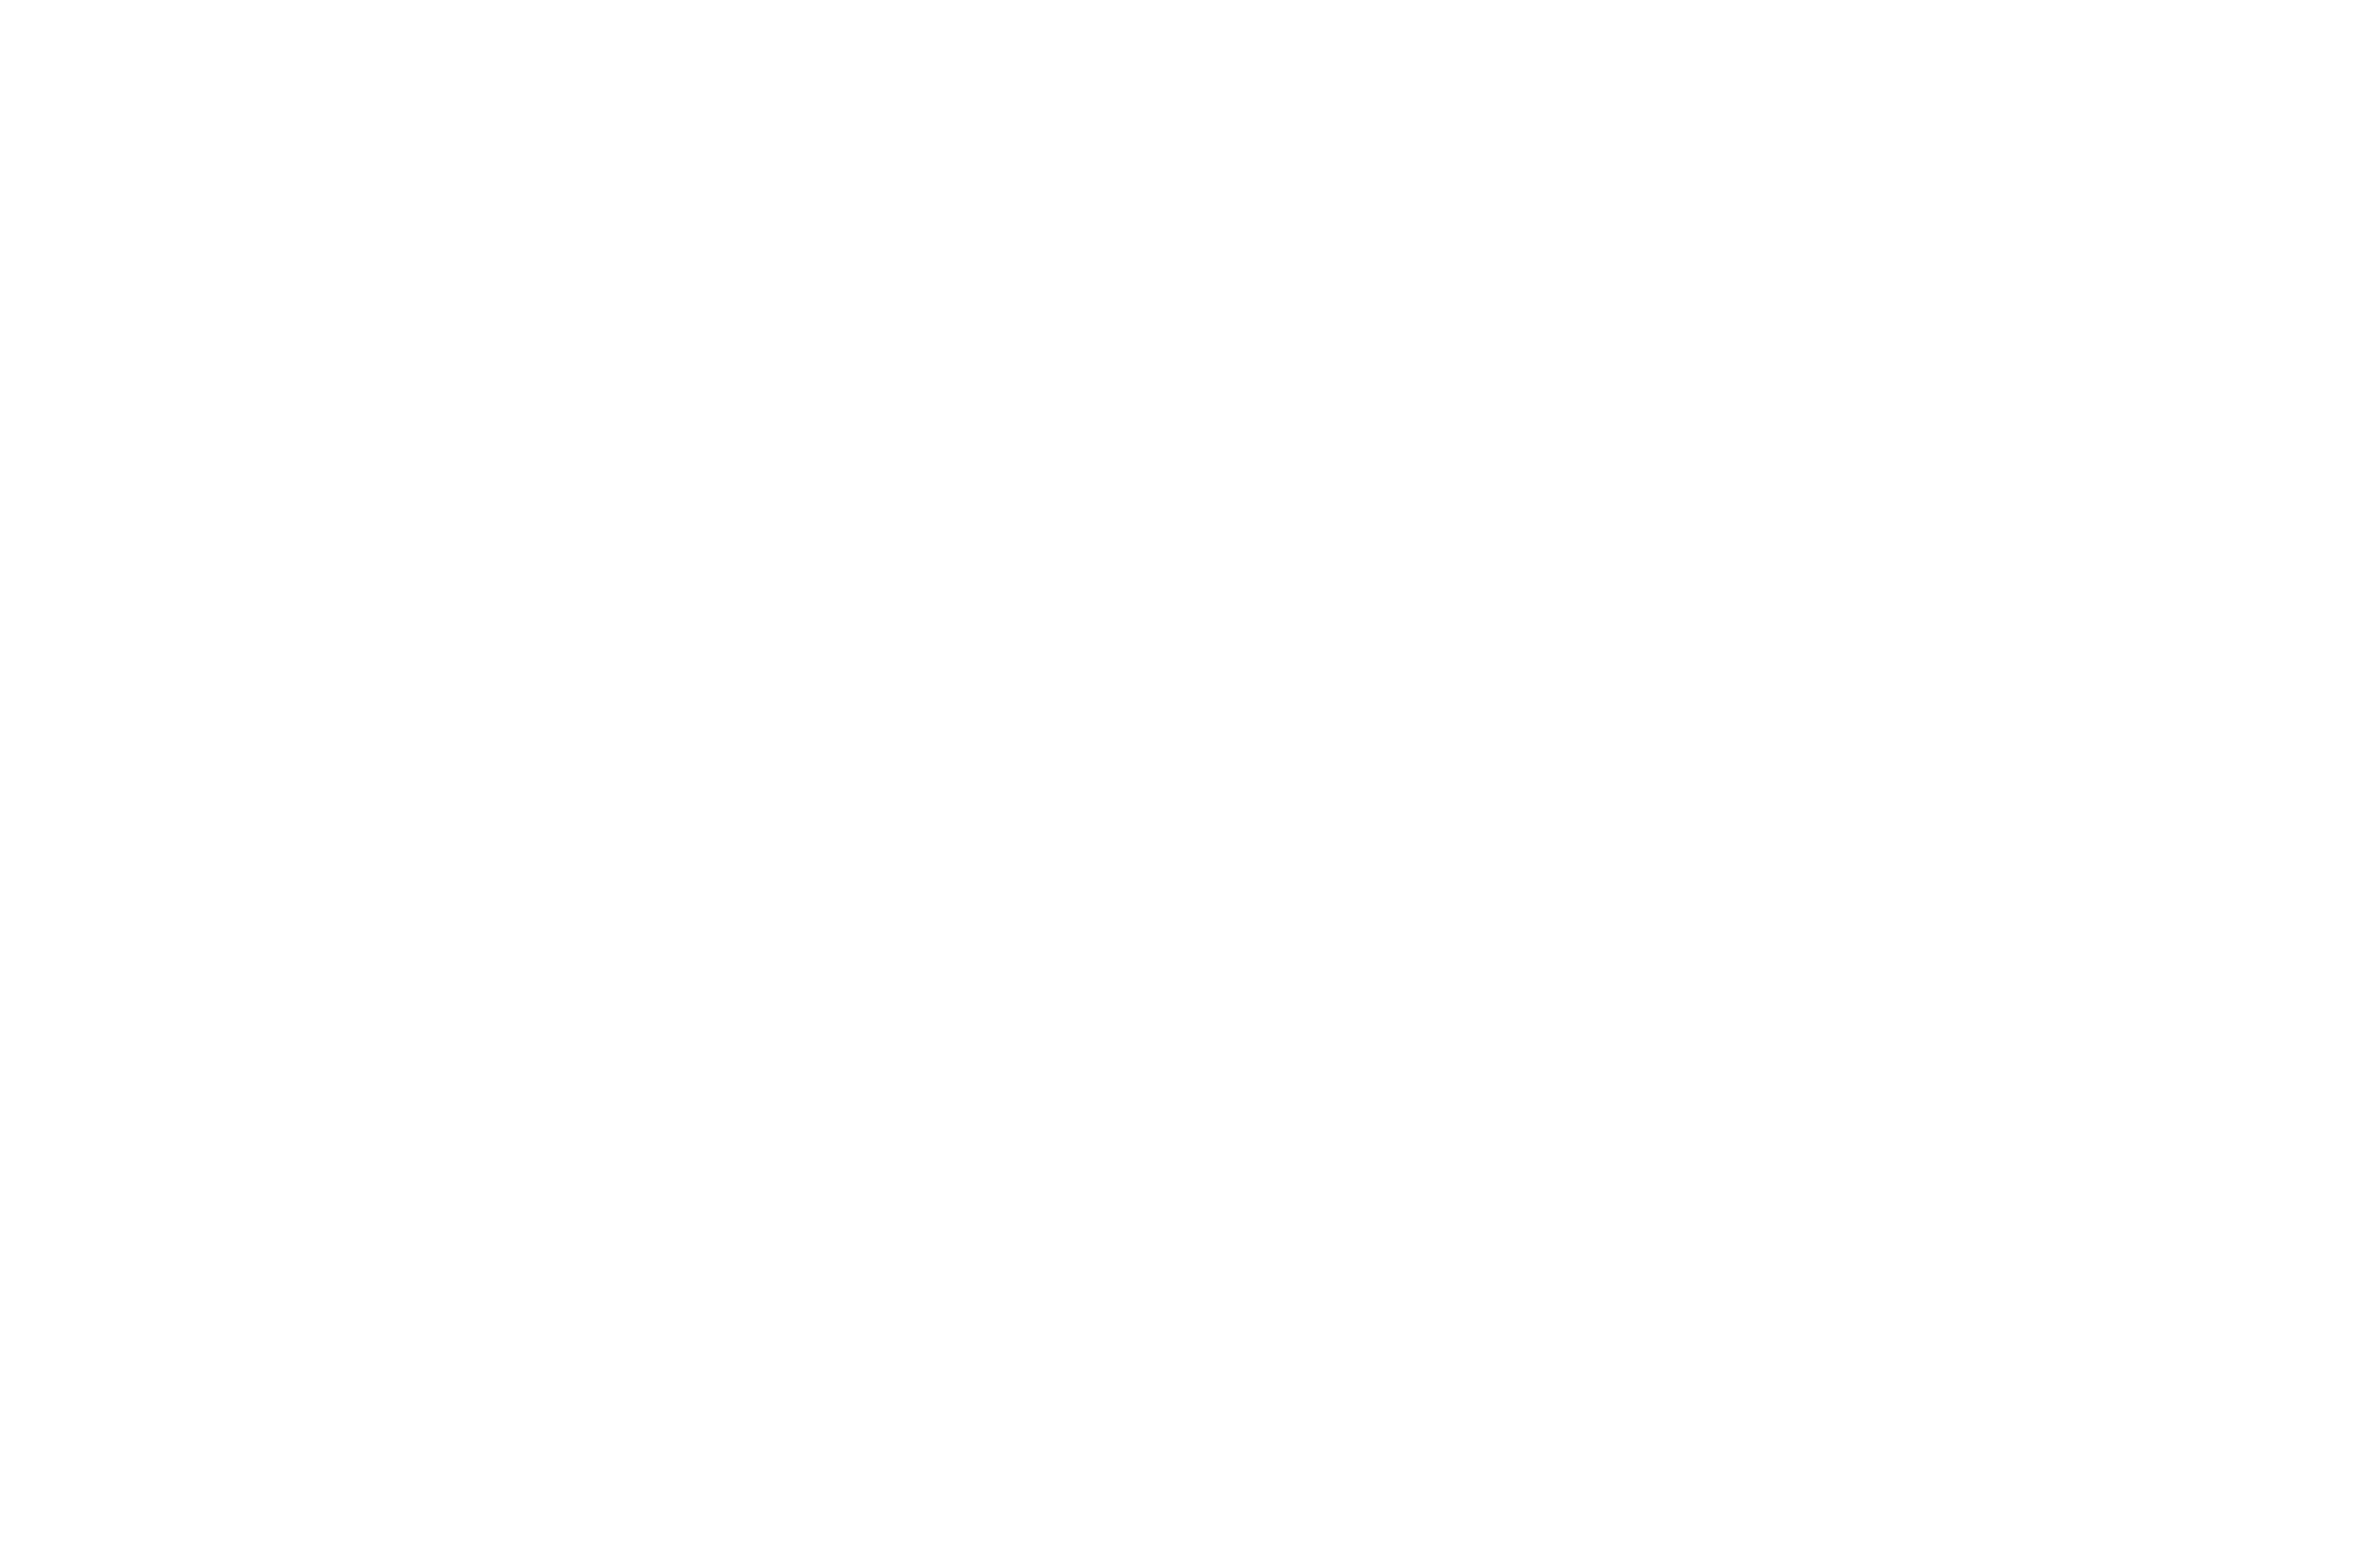 OFFICIALSELECTION-ATLANTAHORRORFILMFESTIVAL-2019-2.png